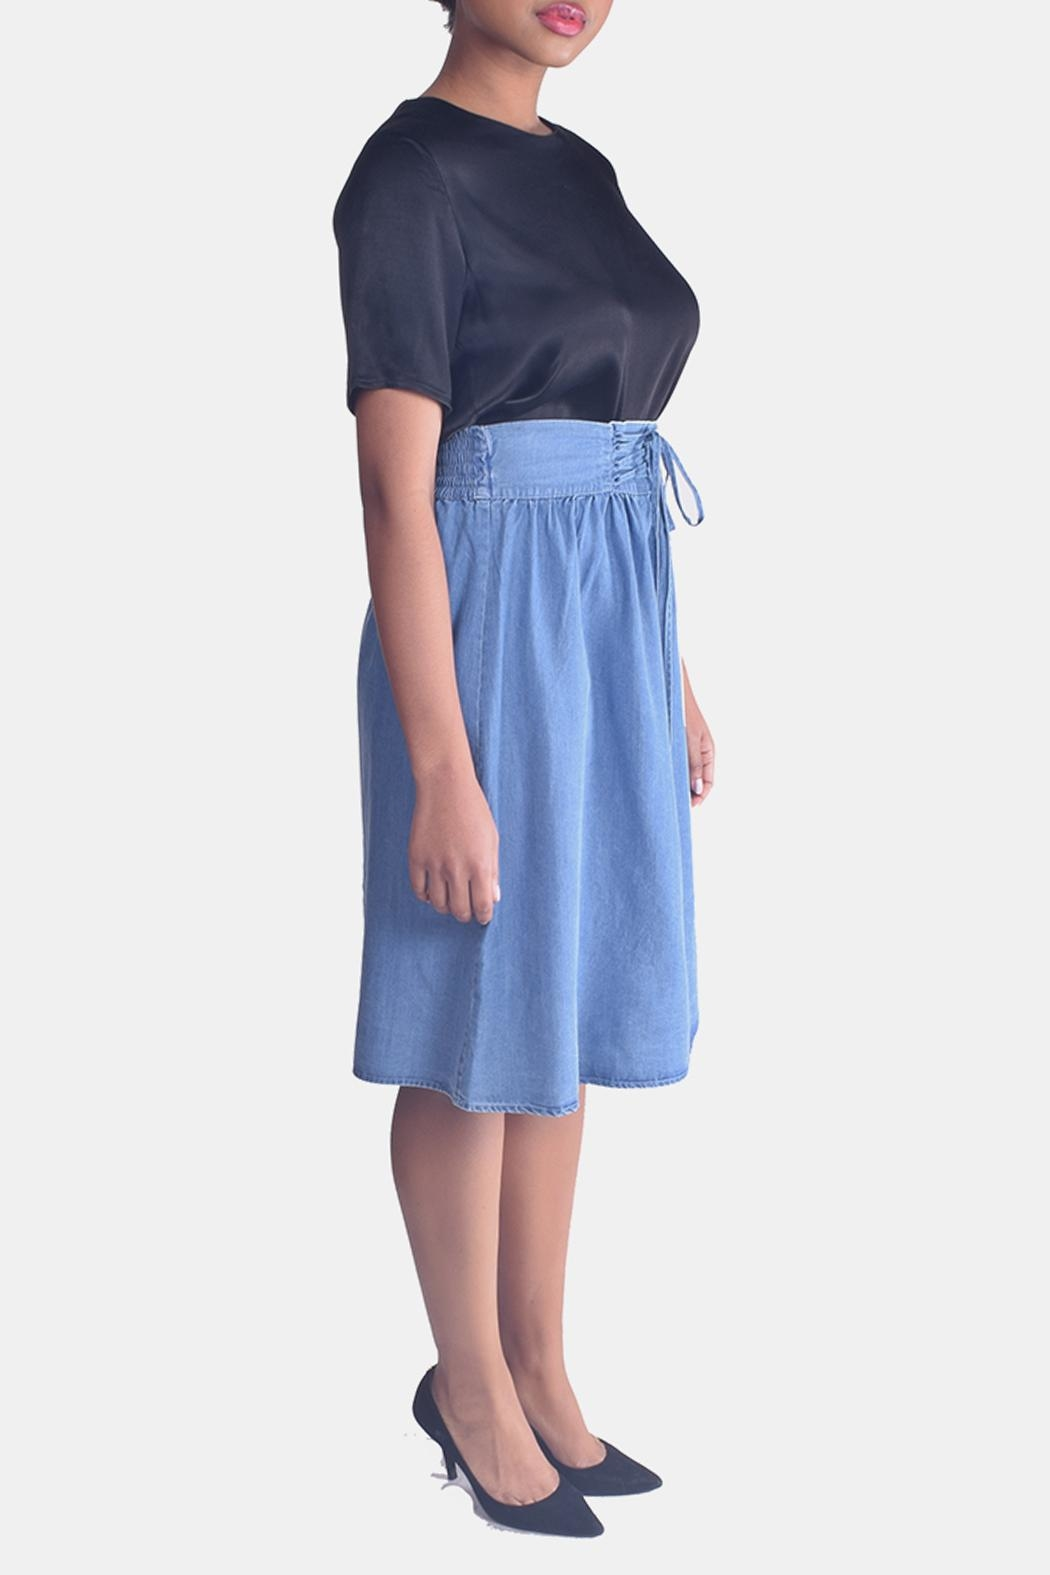 Skies Are Blue Corset Denim Skirt - Side Cropped Image